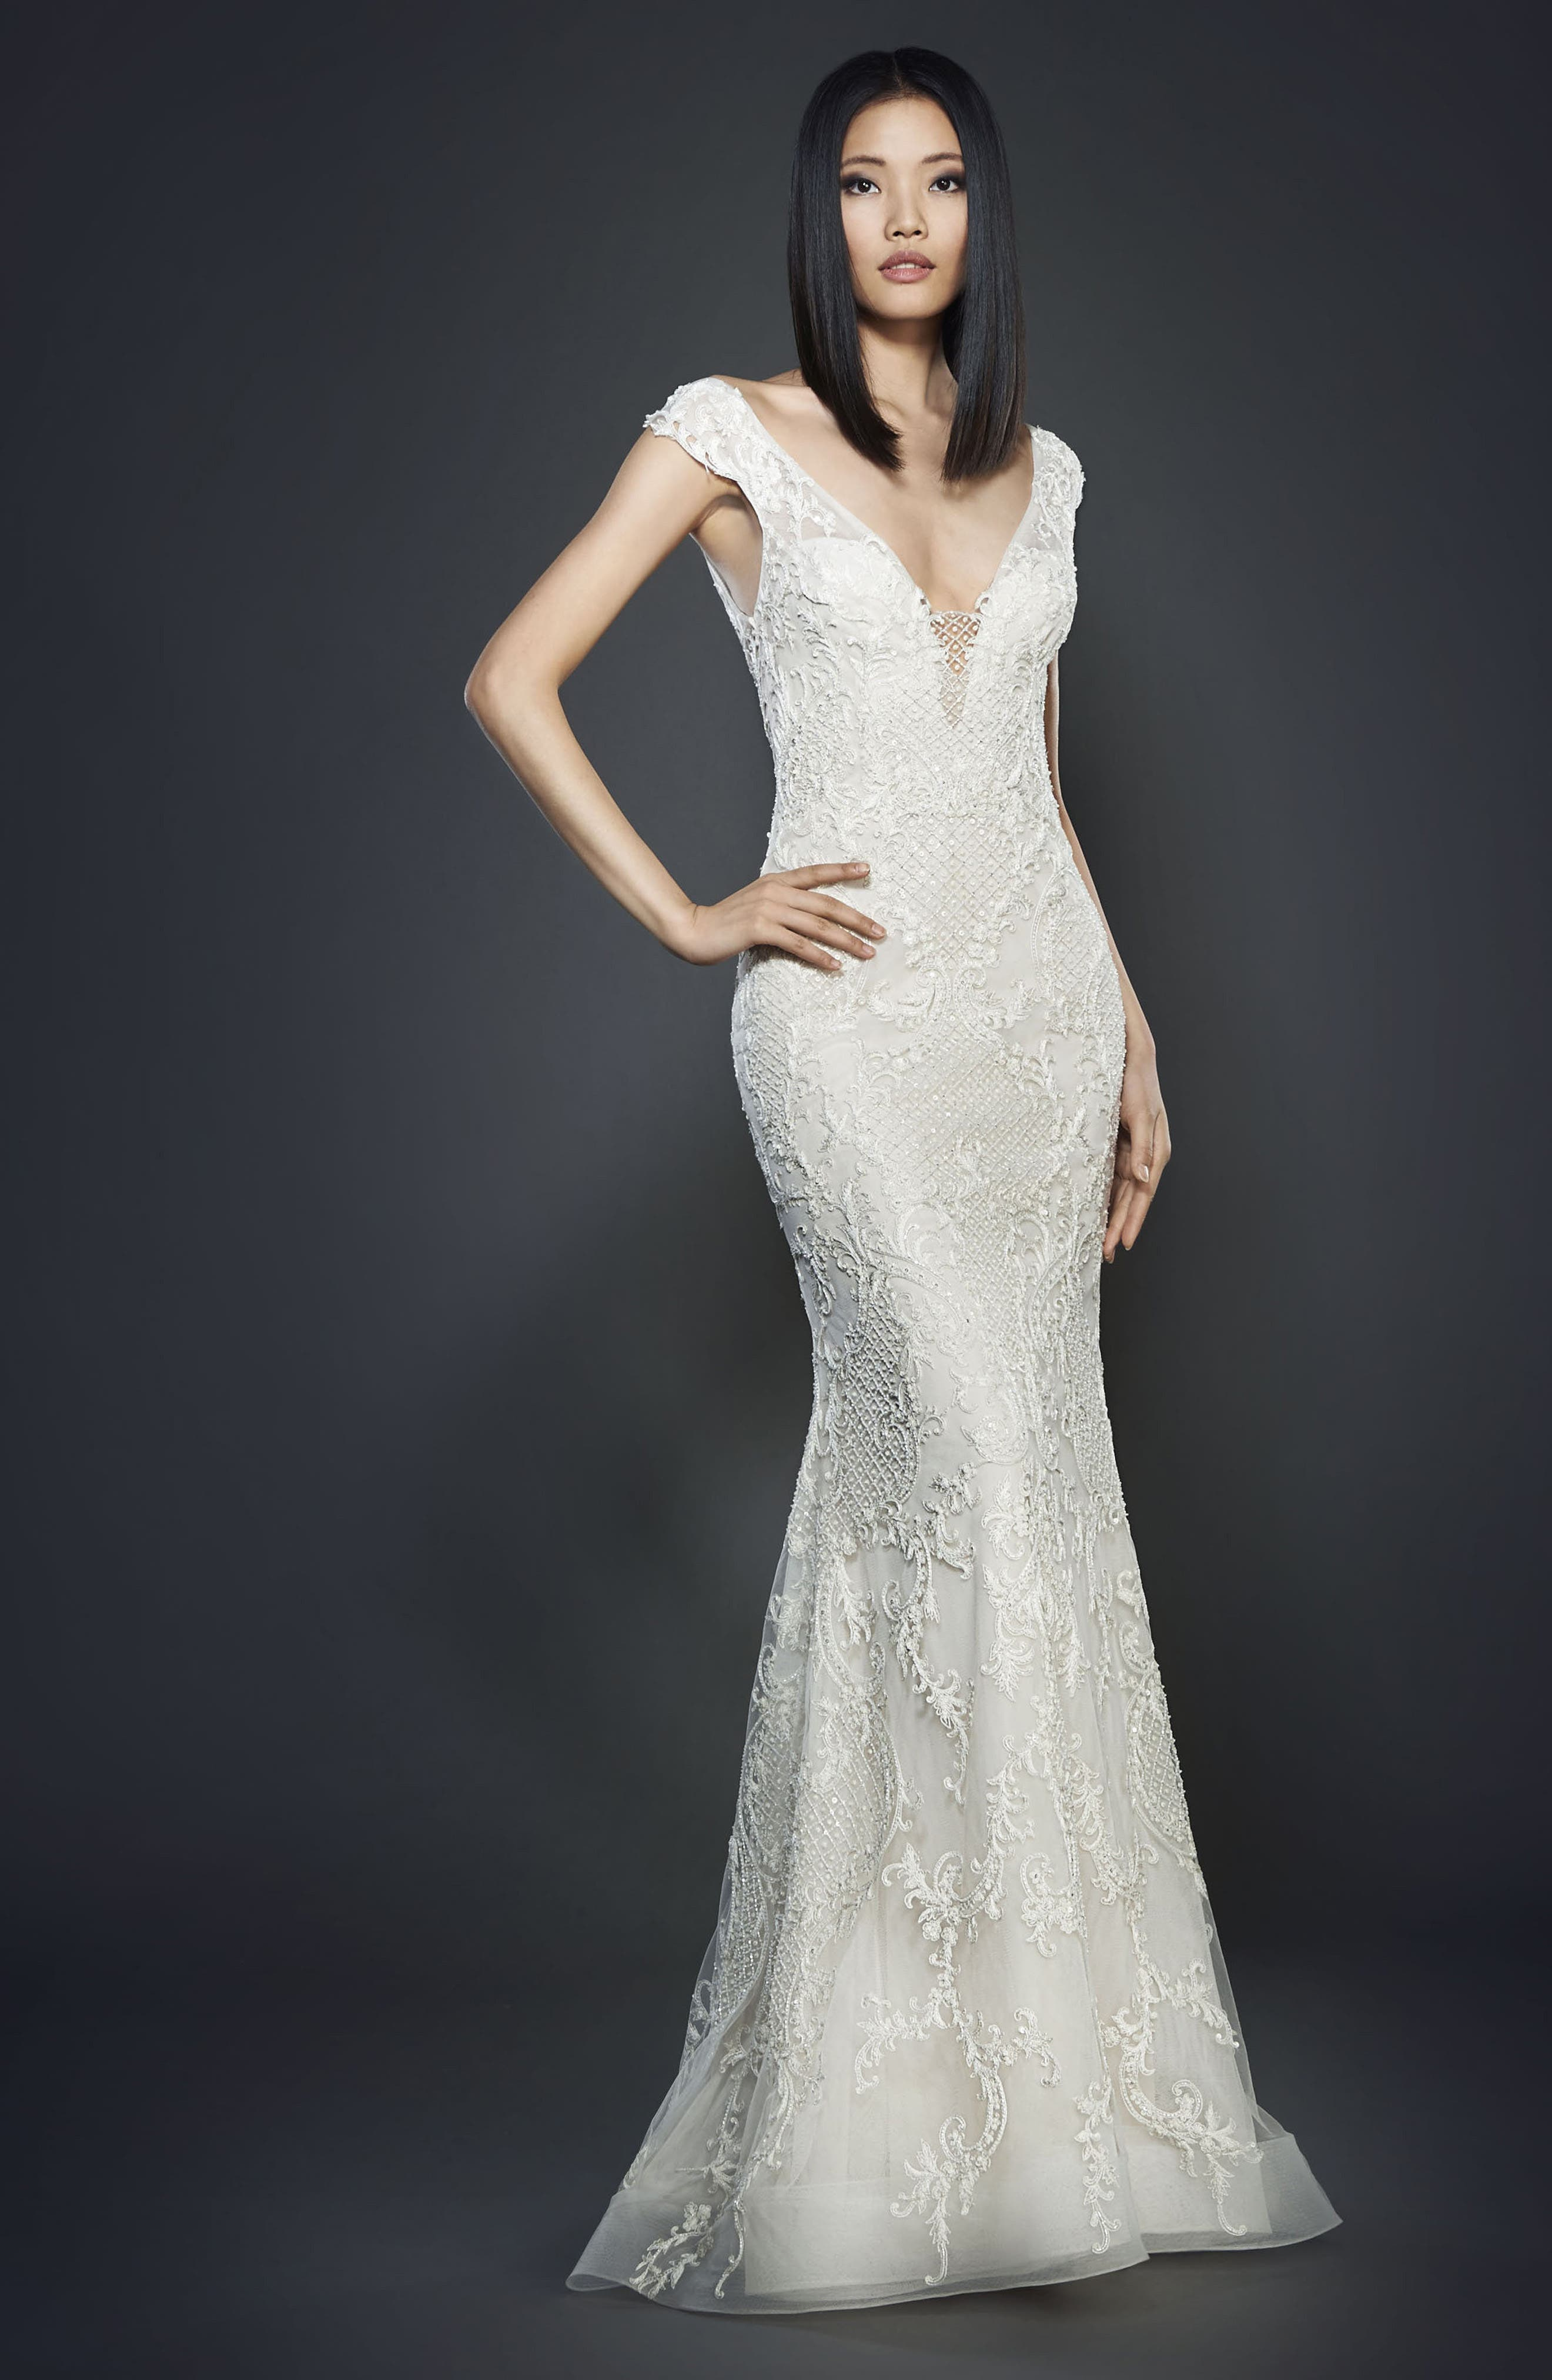 Embroidered Off the Shoulder Gown,                             Main thumbnail 1, color,                             900